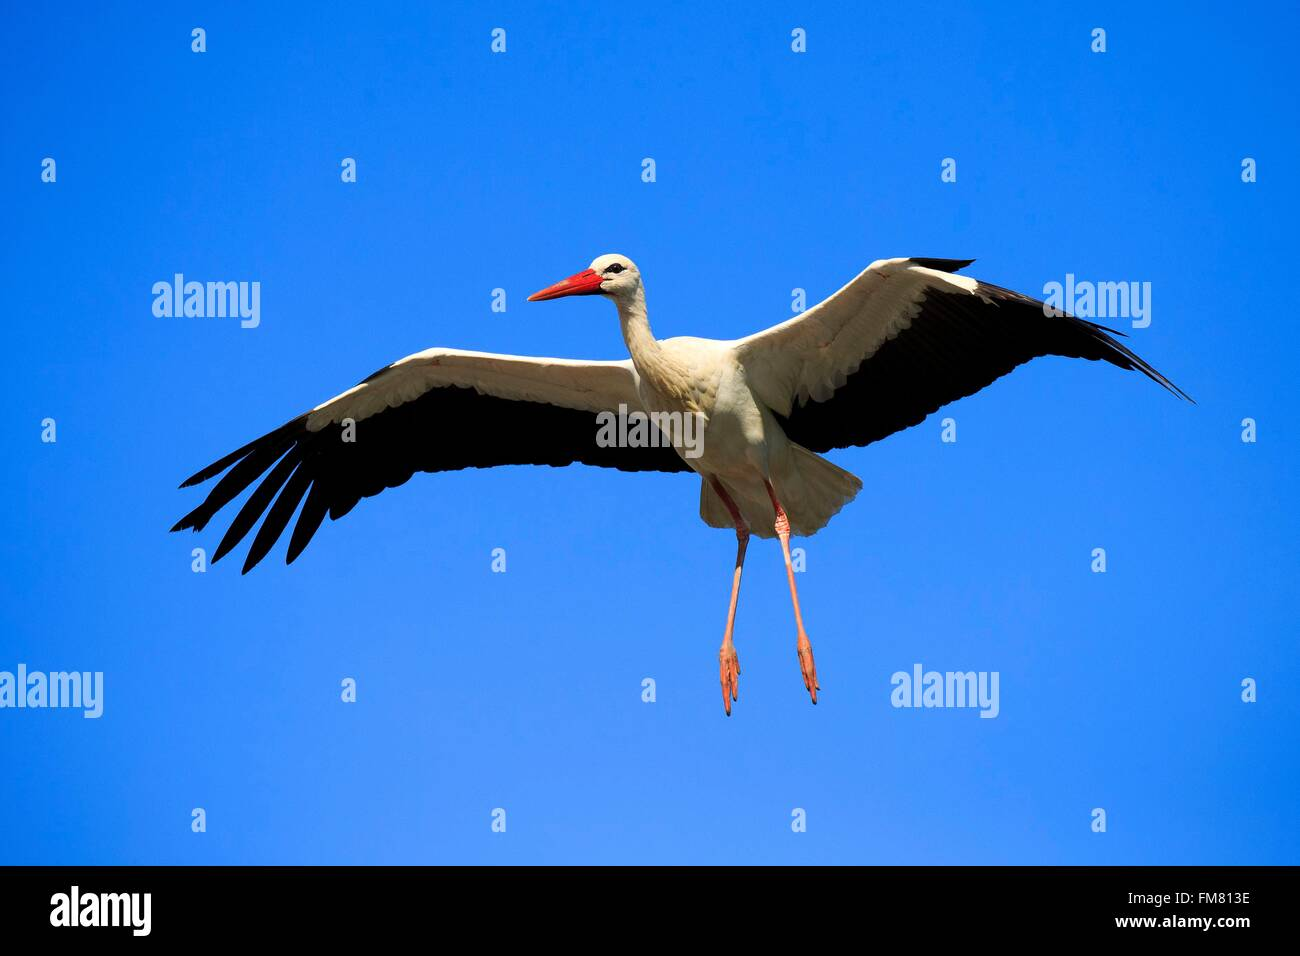 France, Haut Rhin, Hunawihr, White stork (Ciconia ciconia) in the center for reintroduction of storks in Alsace Stock Photo